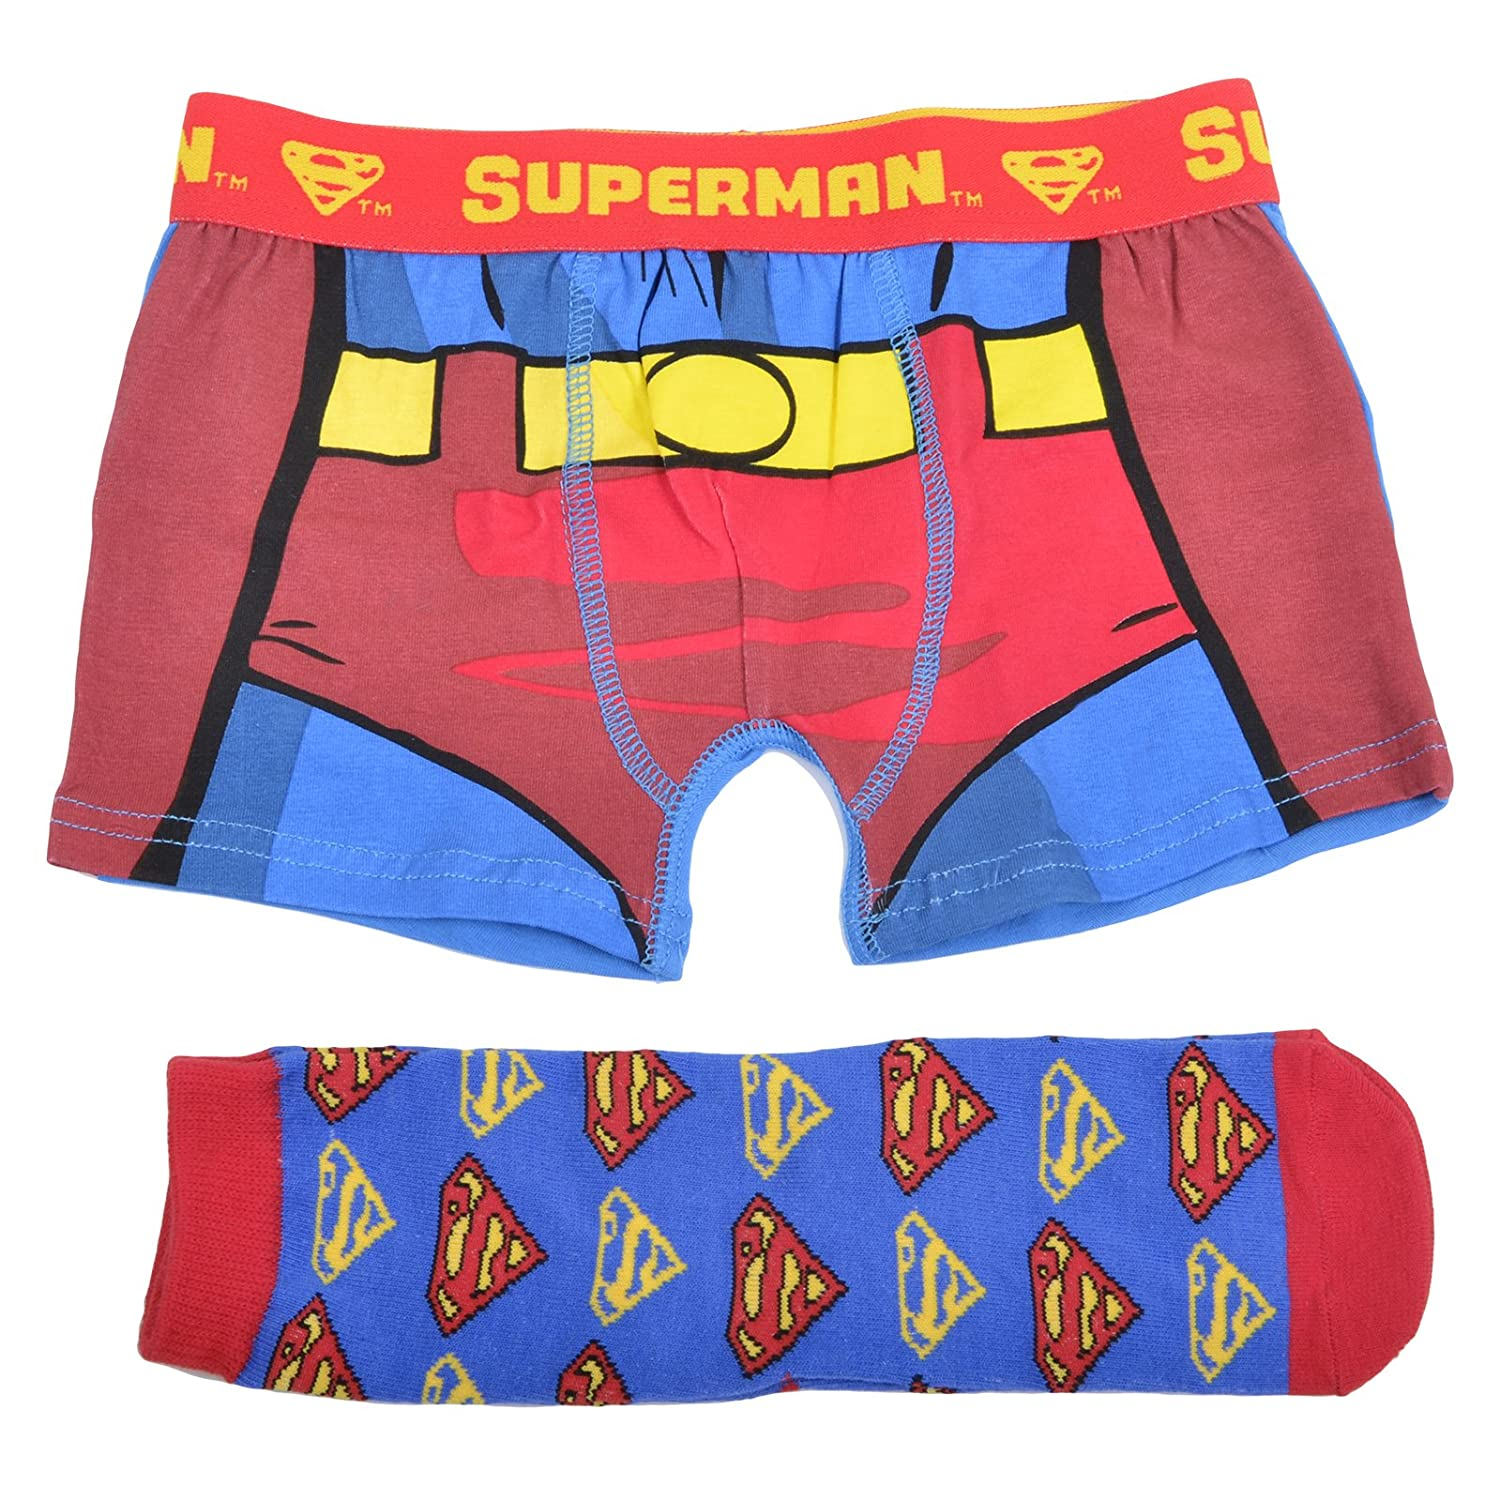 TeddyTs Boys Pirates /& Dinosaurs Colourful Hipster Briefs Pants Set of 5